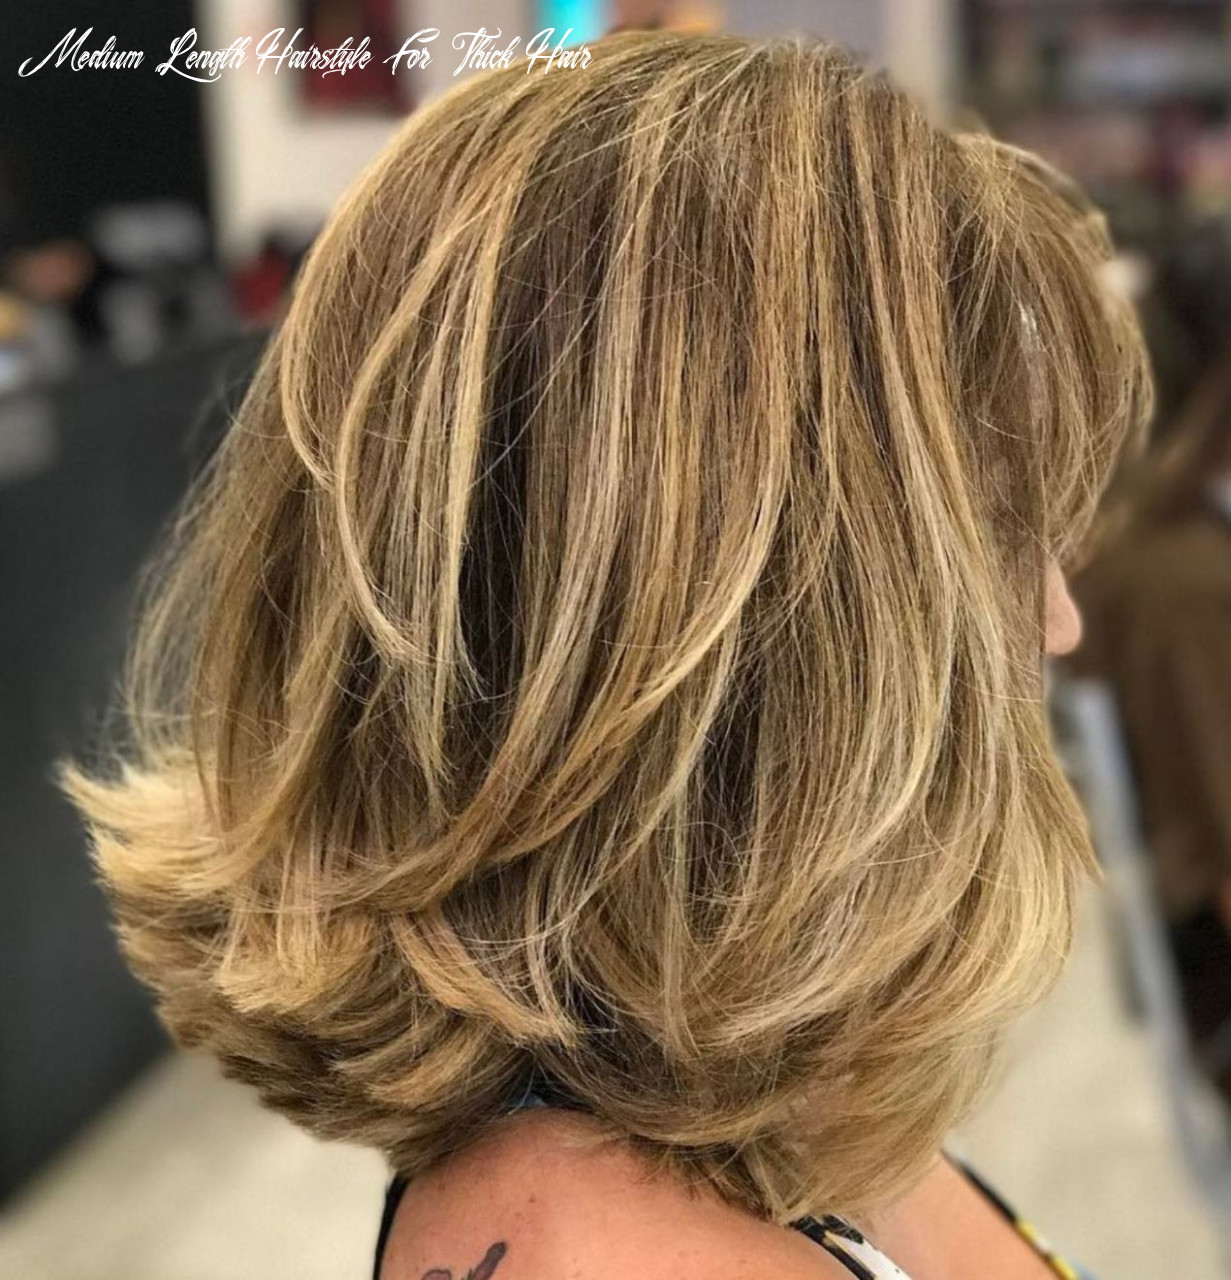 Pin on hairstyles medium length hairstyle for thick hair